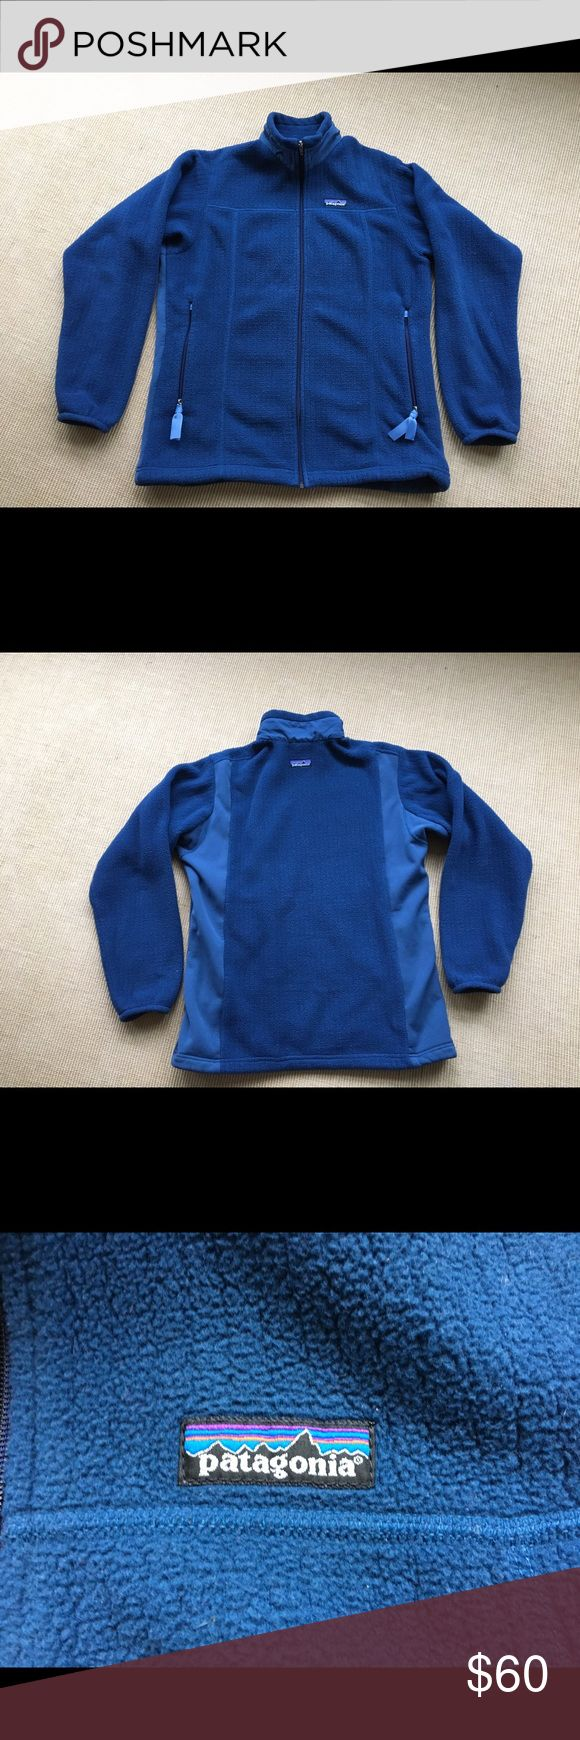 Patagonia Regulator Fleece Jacket Medium Patagonia Fleece Regulator jacket. Full zip. Nice,soft material. Blue in color. Logo on front and back. Women's Medium. Patagonia Jackets & Coats Utility Jackets